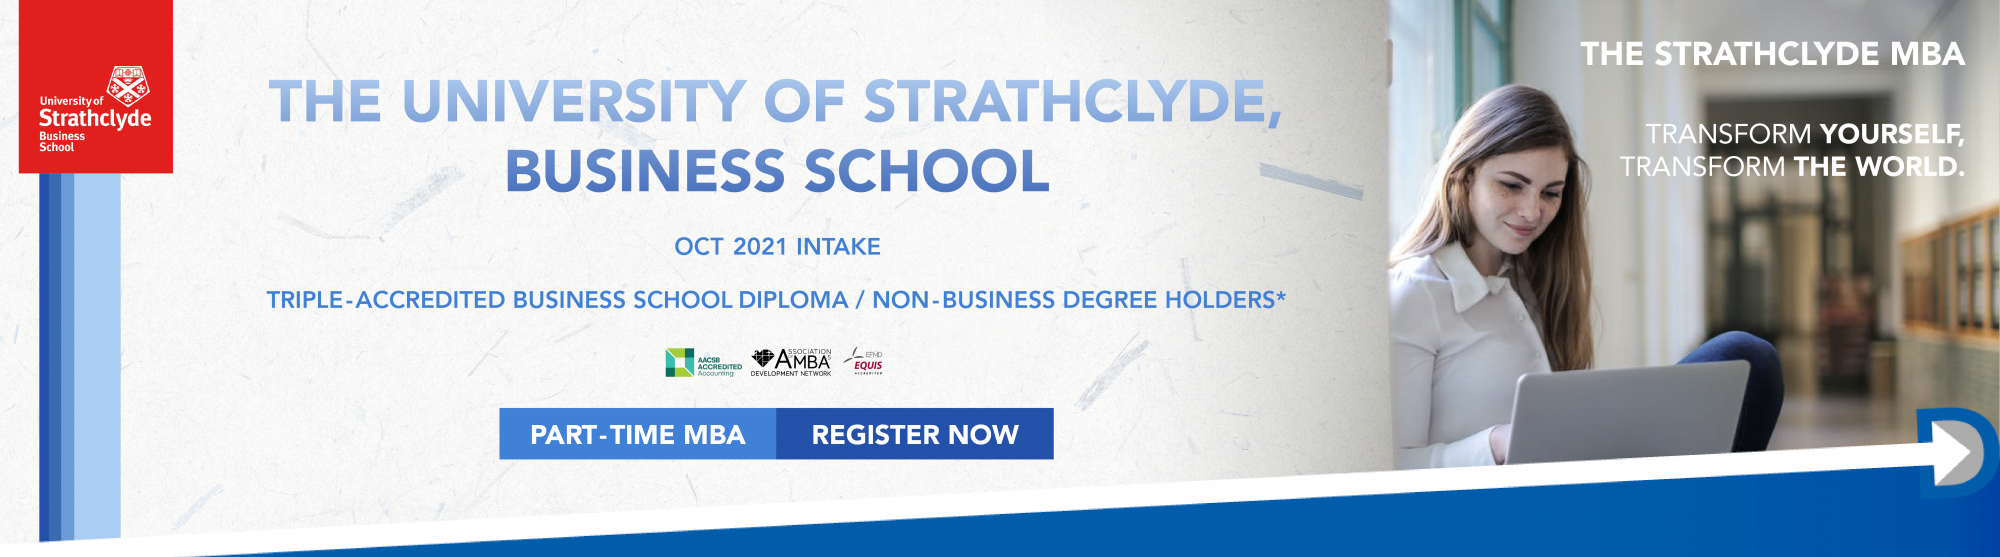 THE STRATHCLYDE MBA